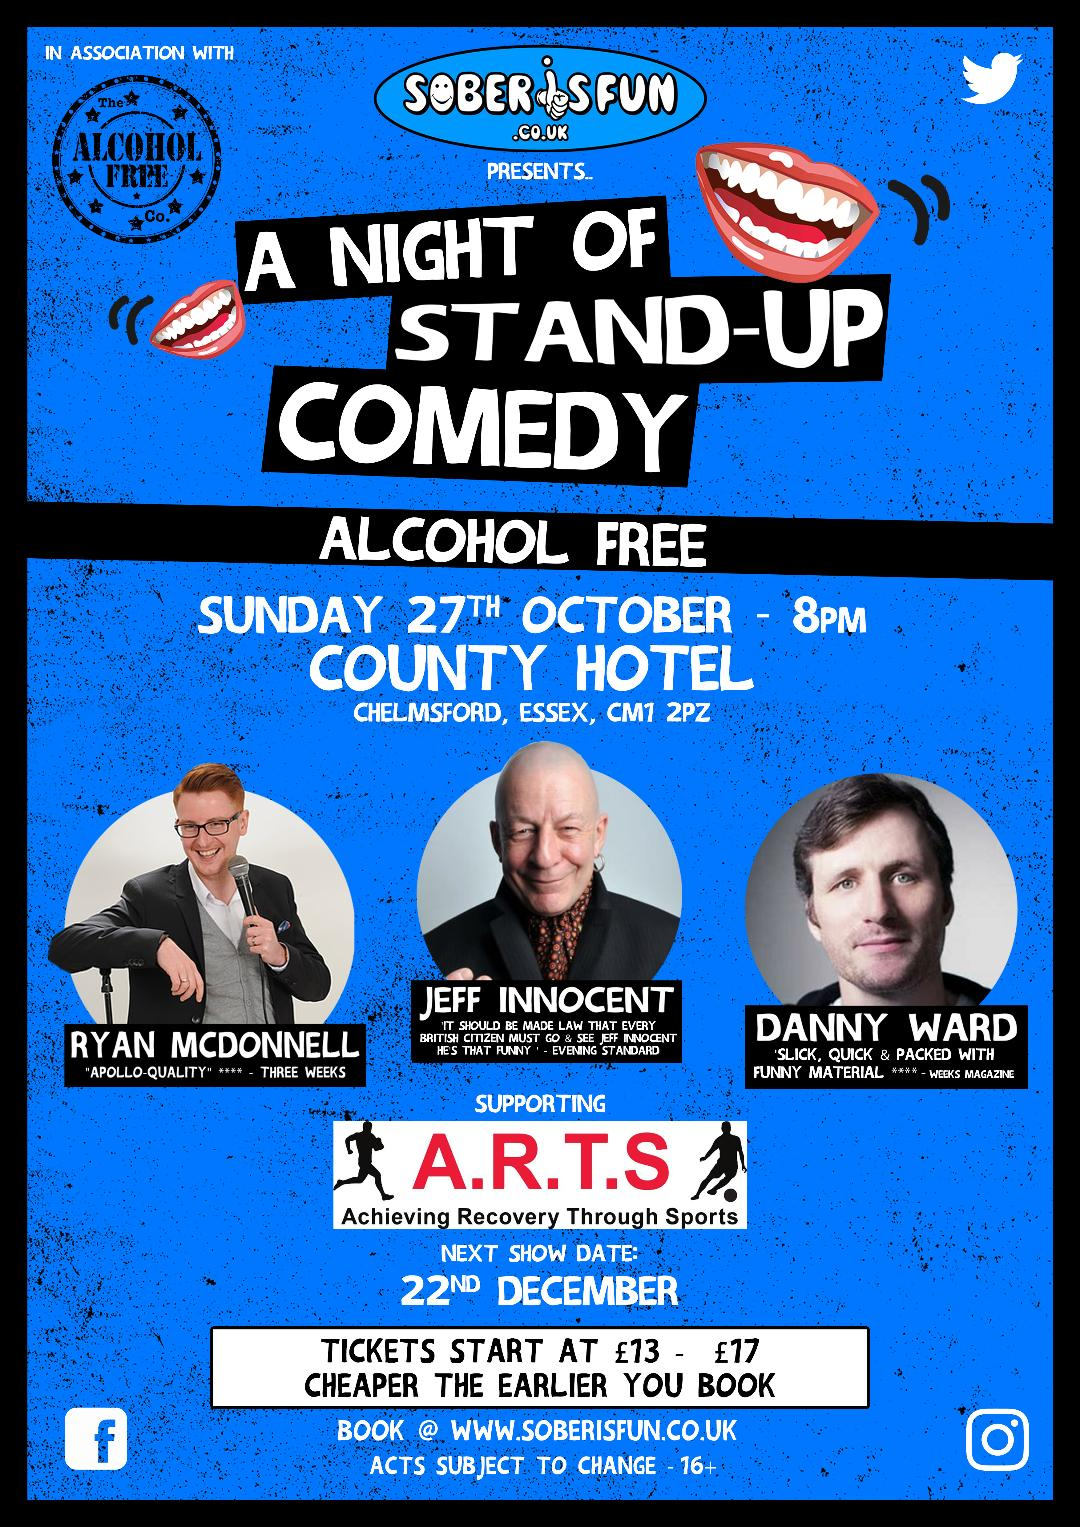 Sober IS Fun  Presents A Night of Alcohol Free Stand - Up Comedy